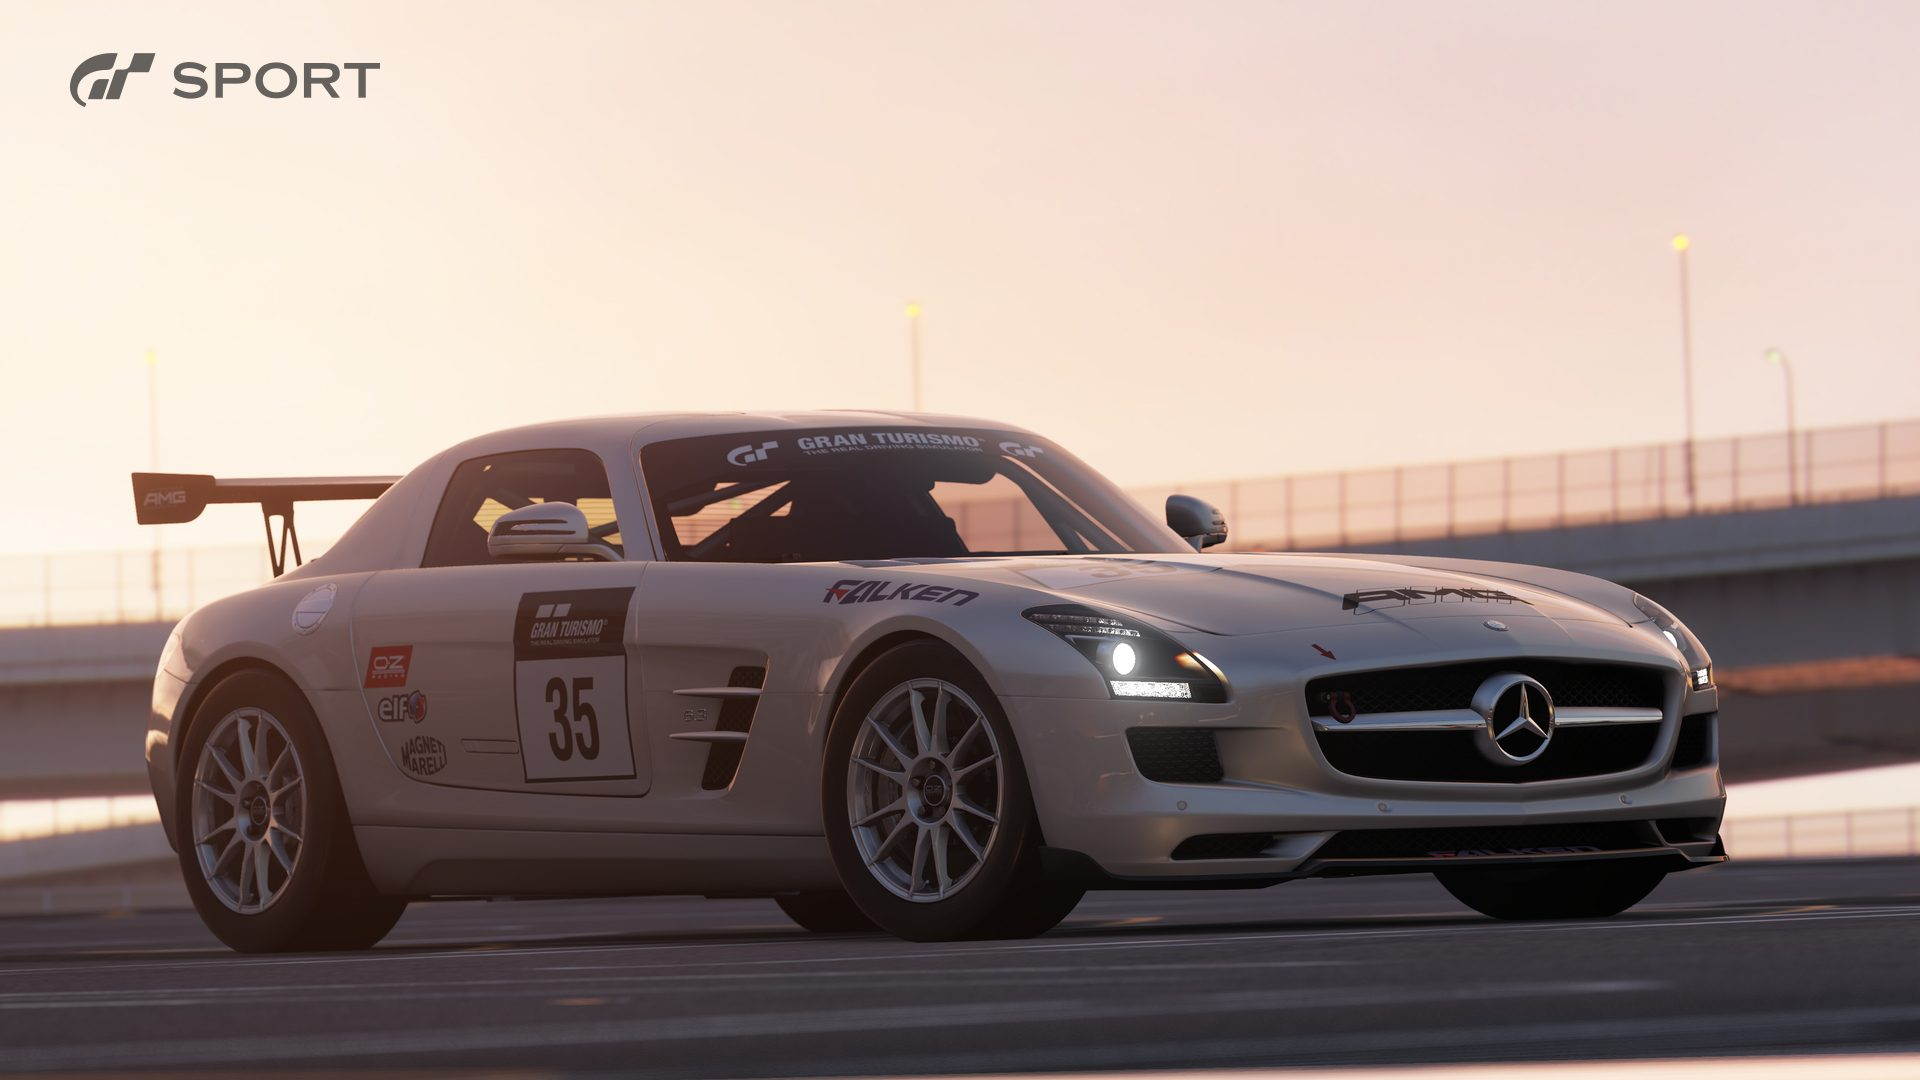 78 new gt sport images say hello to the m6 gt3 fishermans ranch la sarthe. Black Bedroom Furniture Sets. Home Design Ideas